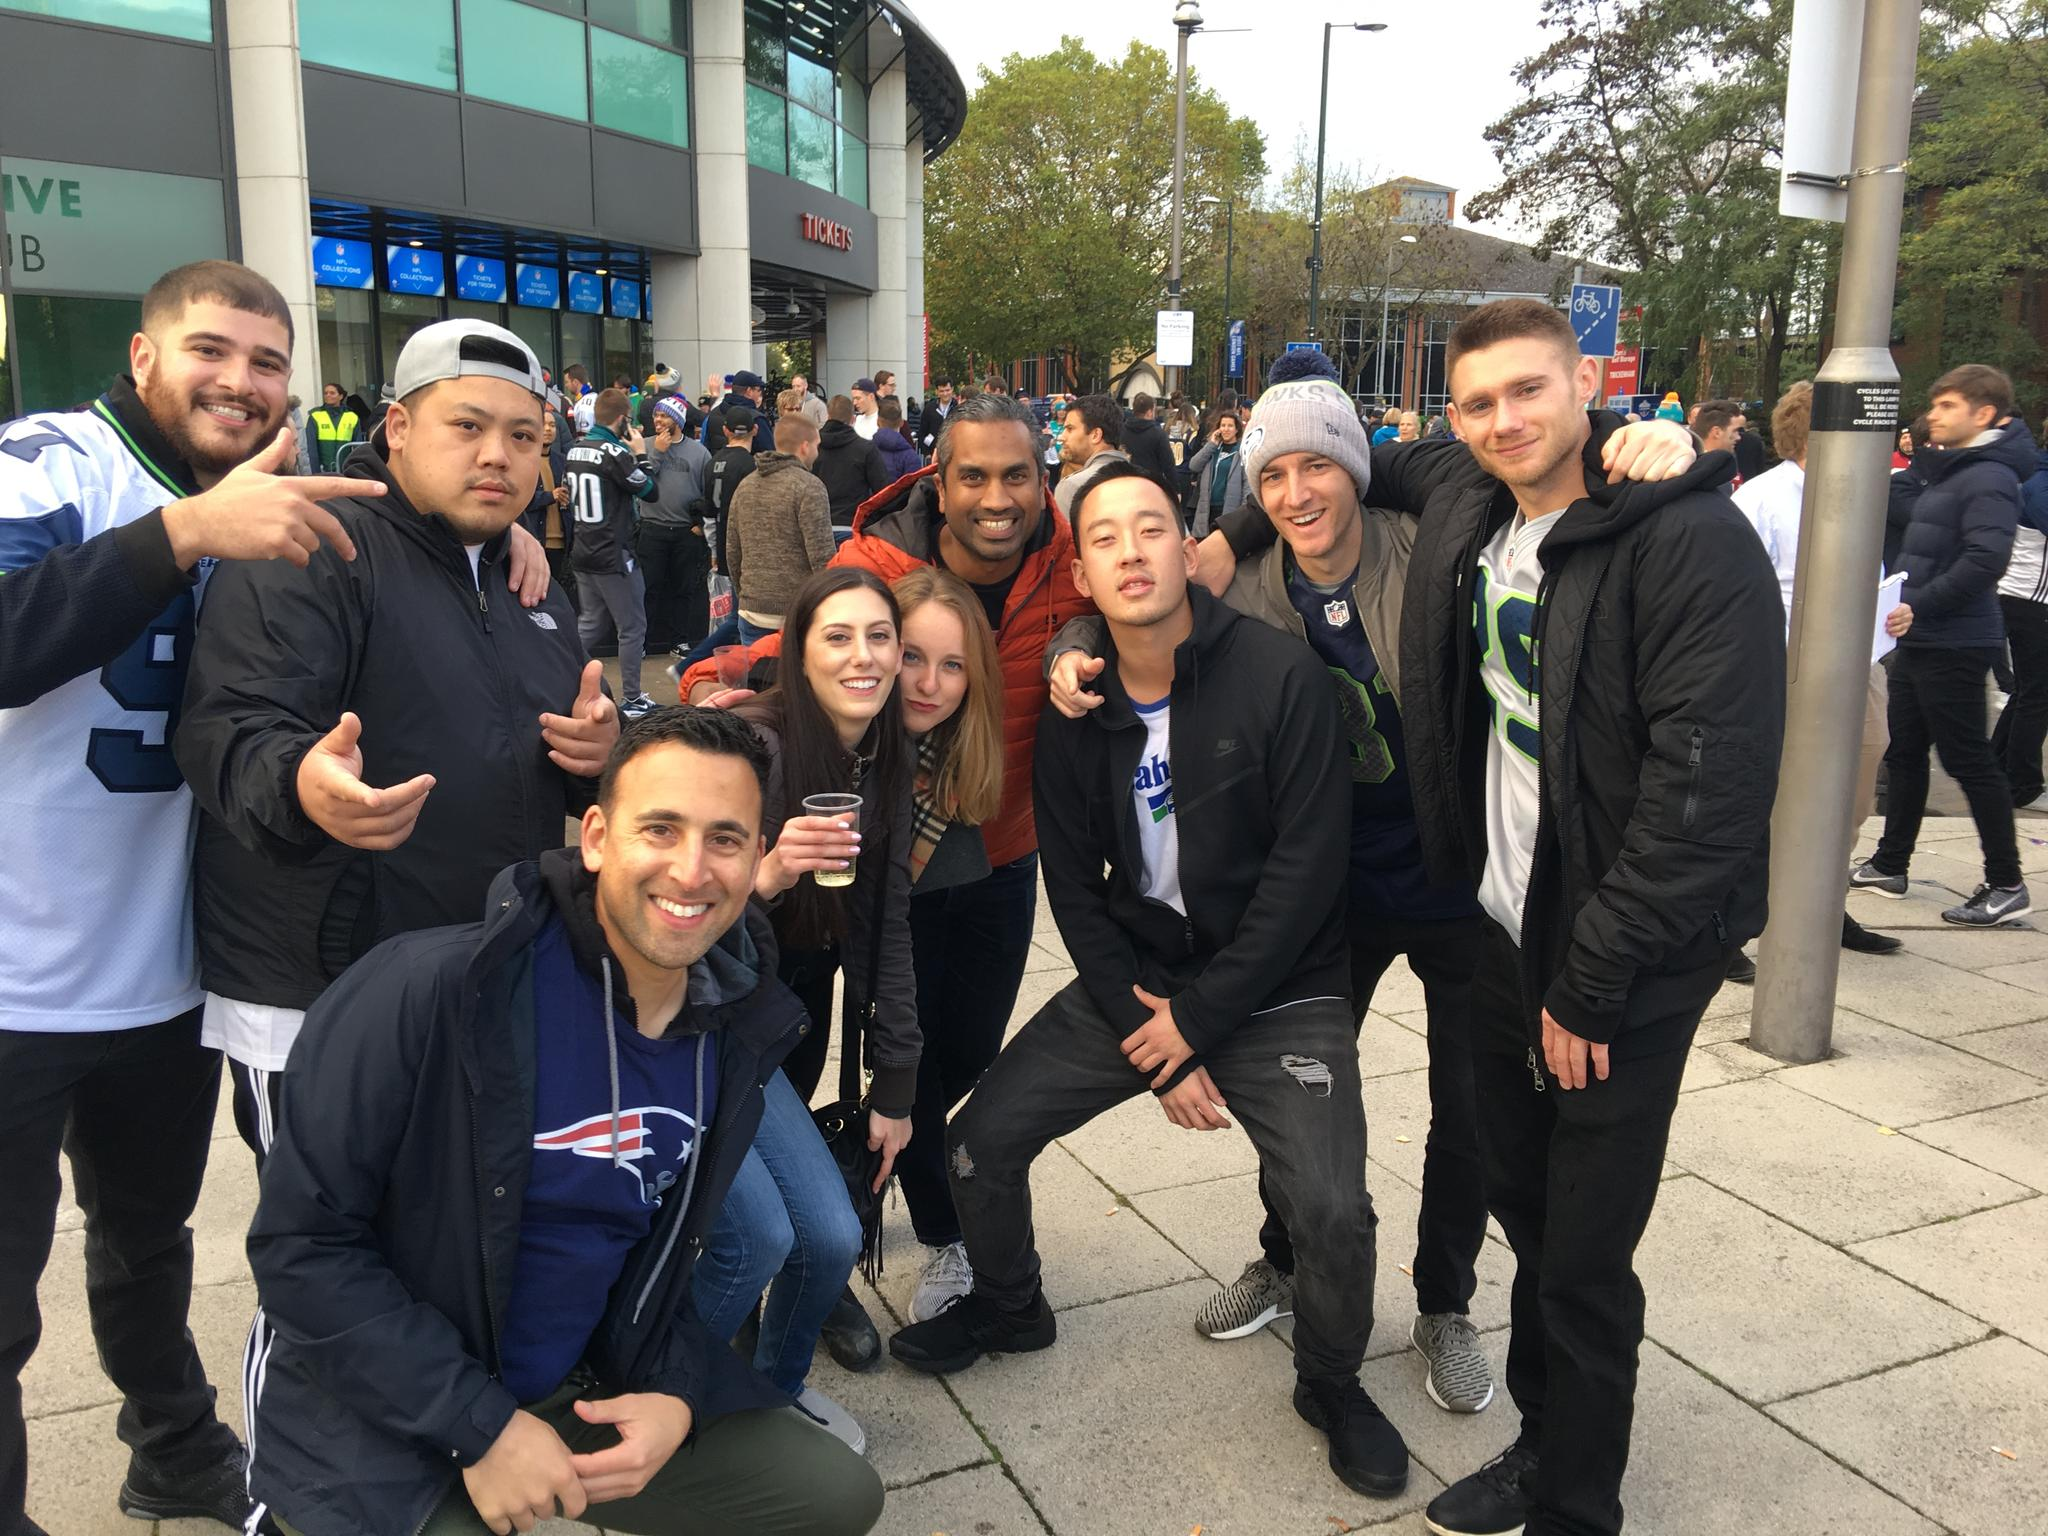 NFL game in London